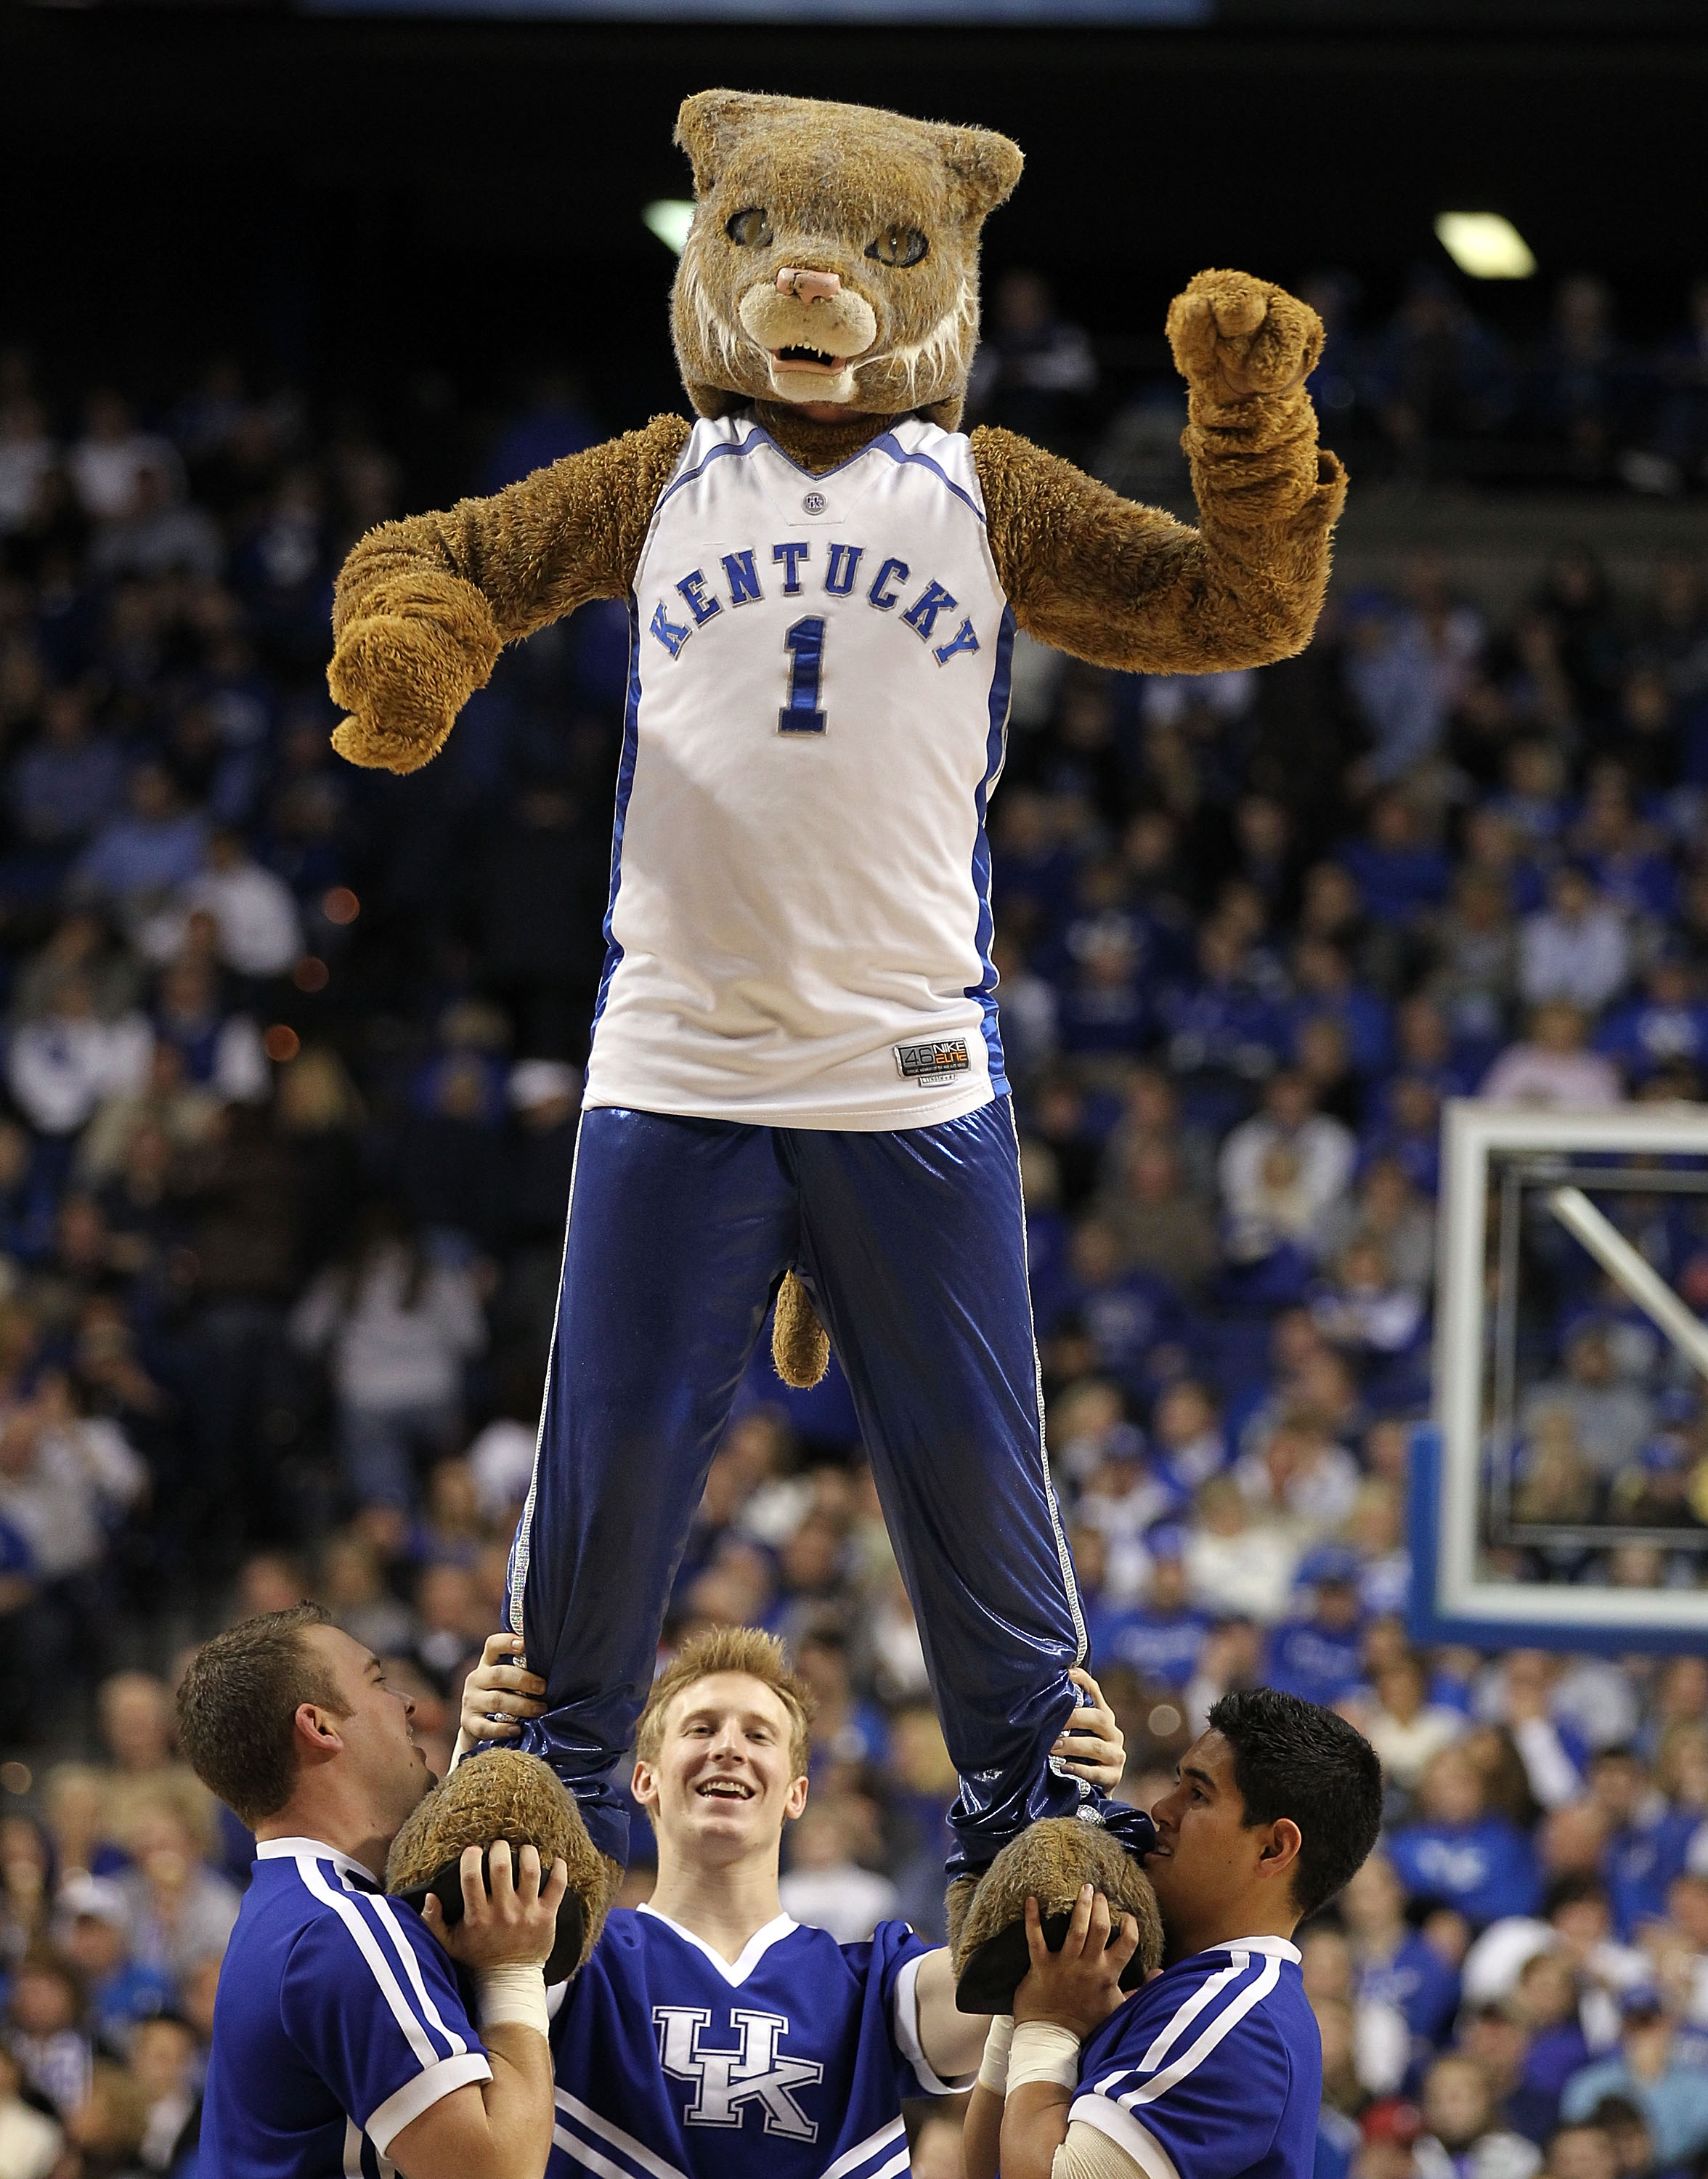 LEXINGTON, KY - DECEMBER 28:  The mascot of the Kentucky Wildcats performs during the game against the Coppin State Eagles at Rupp Arena on December 28, 2010 in Lexington, Kentucky.  Kentucky won 91-61.  (Photo by Andy Lyons/Getty Images)